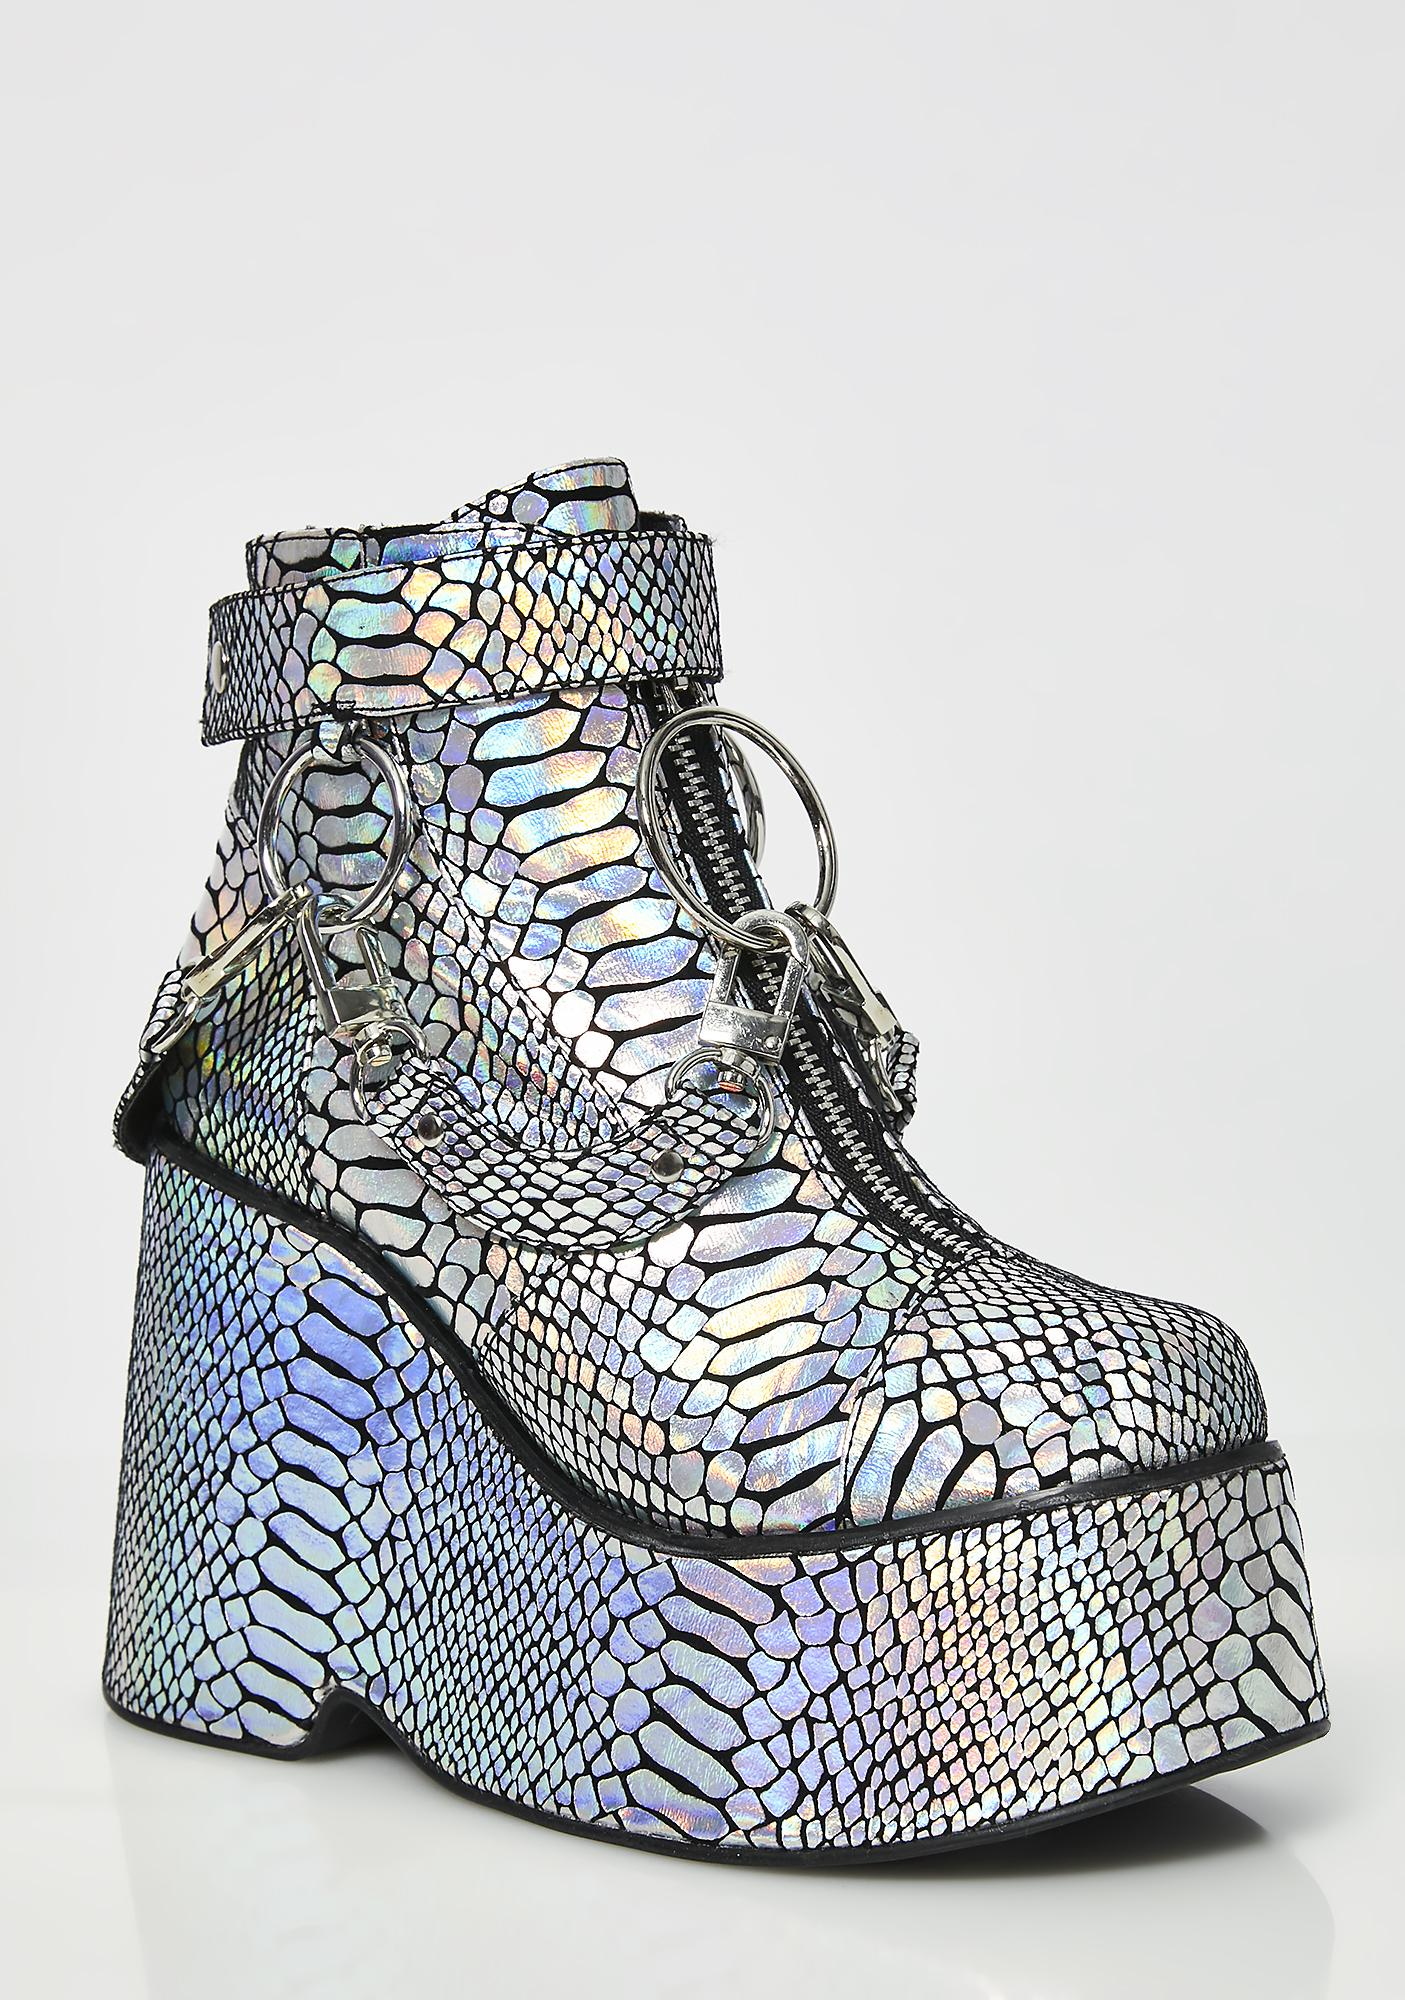 Club Exx Electric Venom Hologram Boots